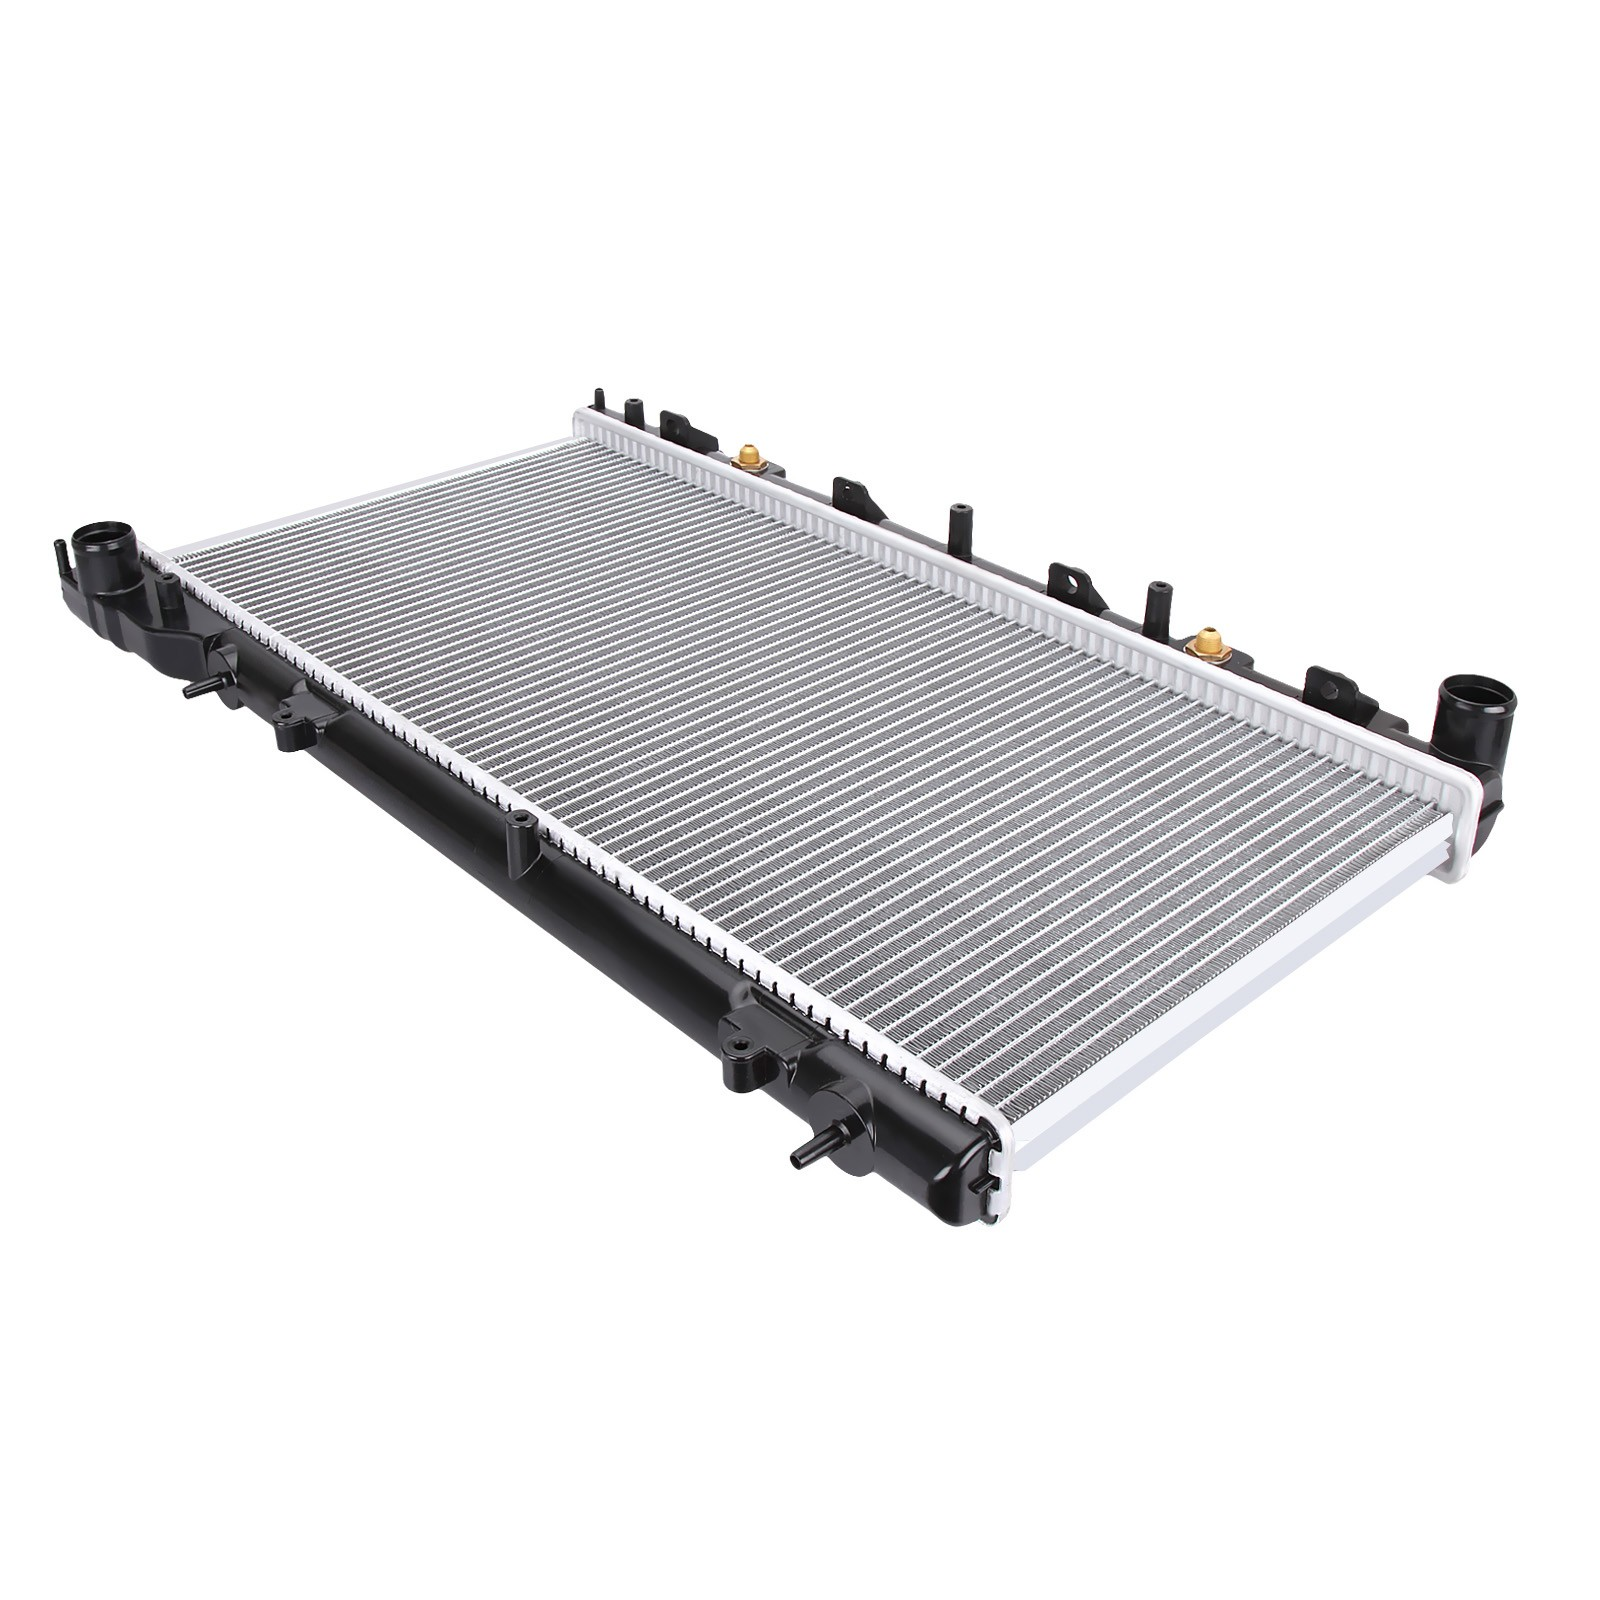 Dromedary-High-quality Subaru Outback Radiator | Premium Radiator For Subaru Forester-3